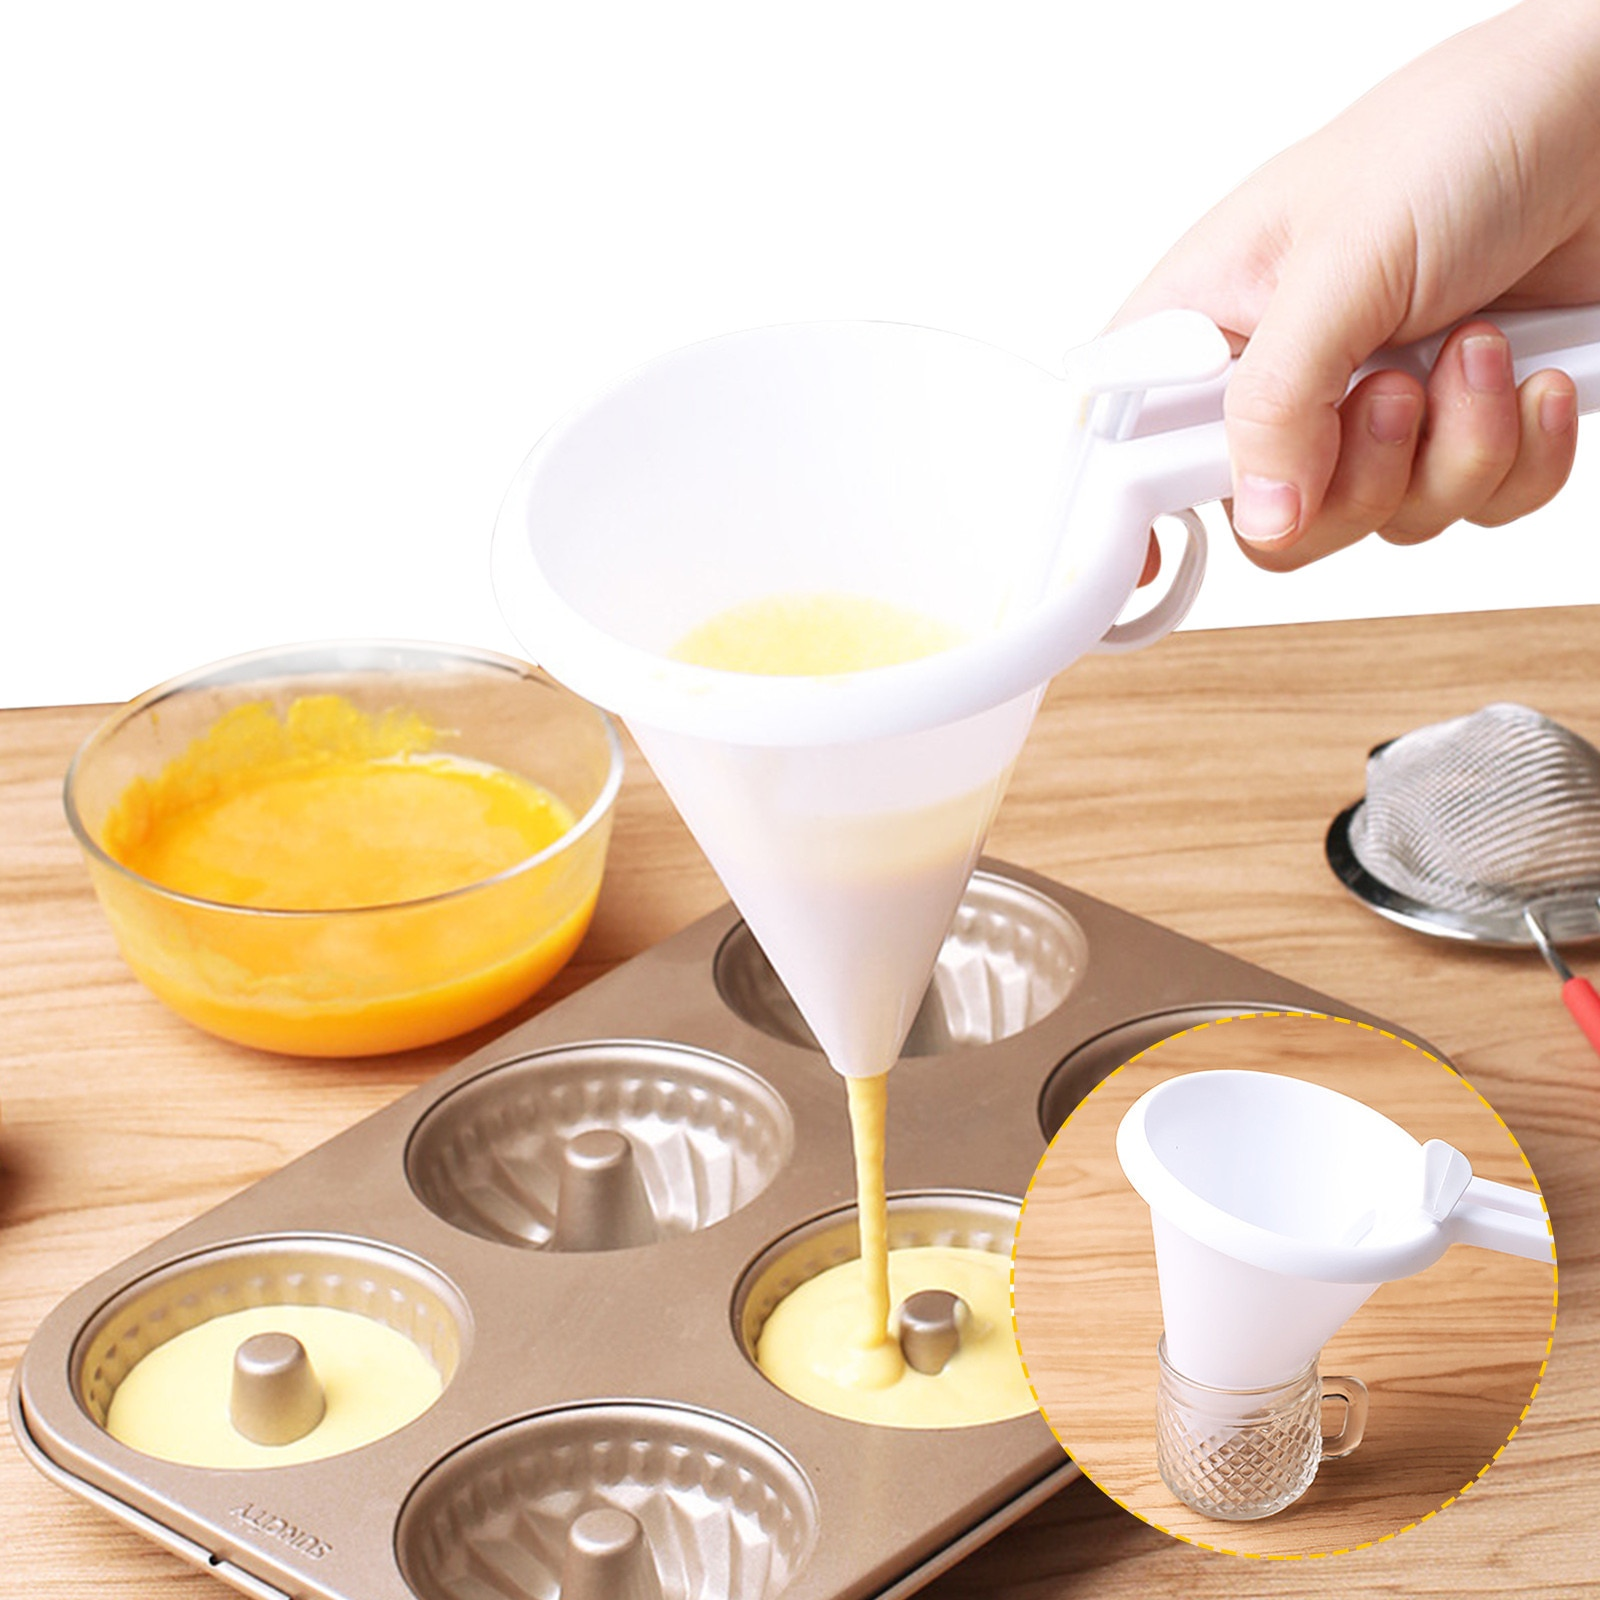 Фото - Adjustable Butter Cream Portion Funnel Handheld Butter Frosting Dispenser Cake Baking Tool Mold Kitchen Baking Tools Funnel too faced butter cream